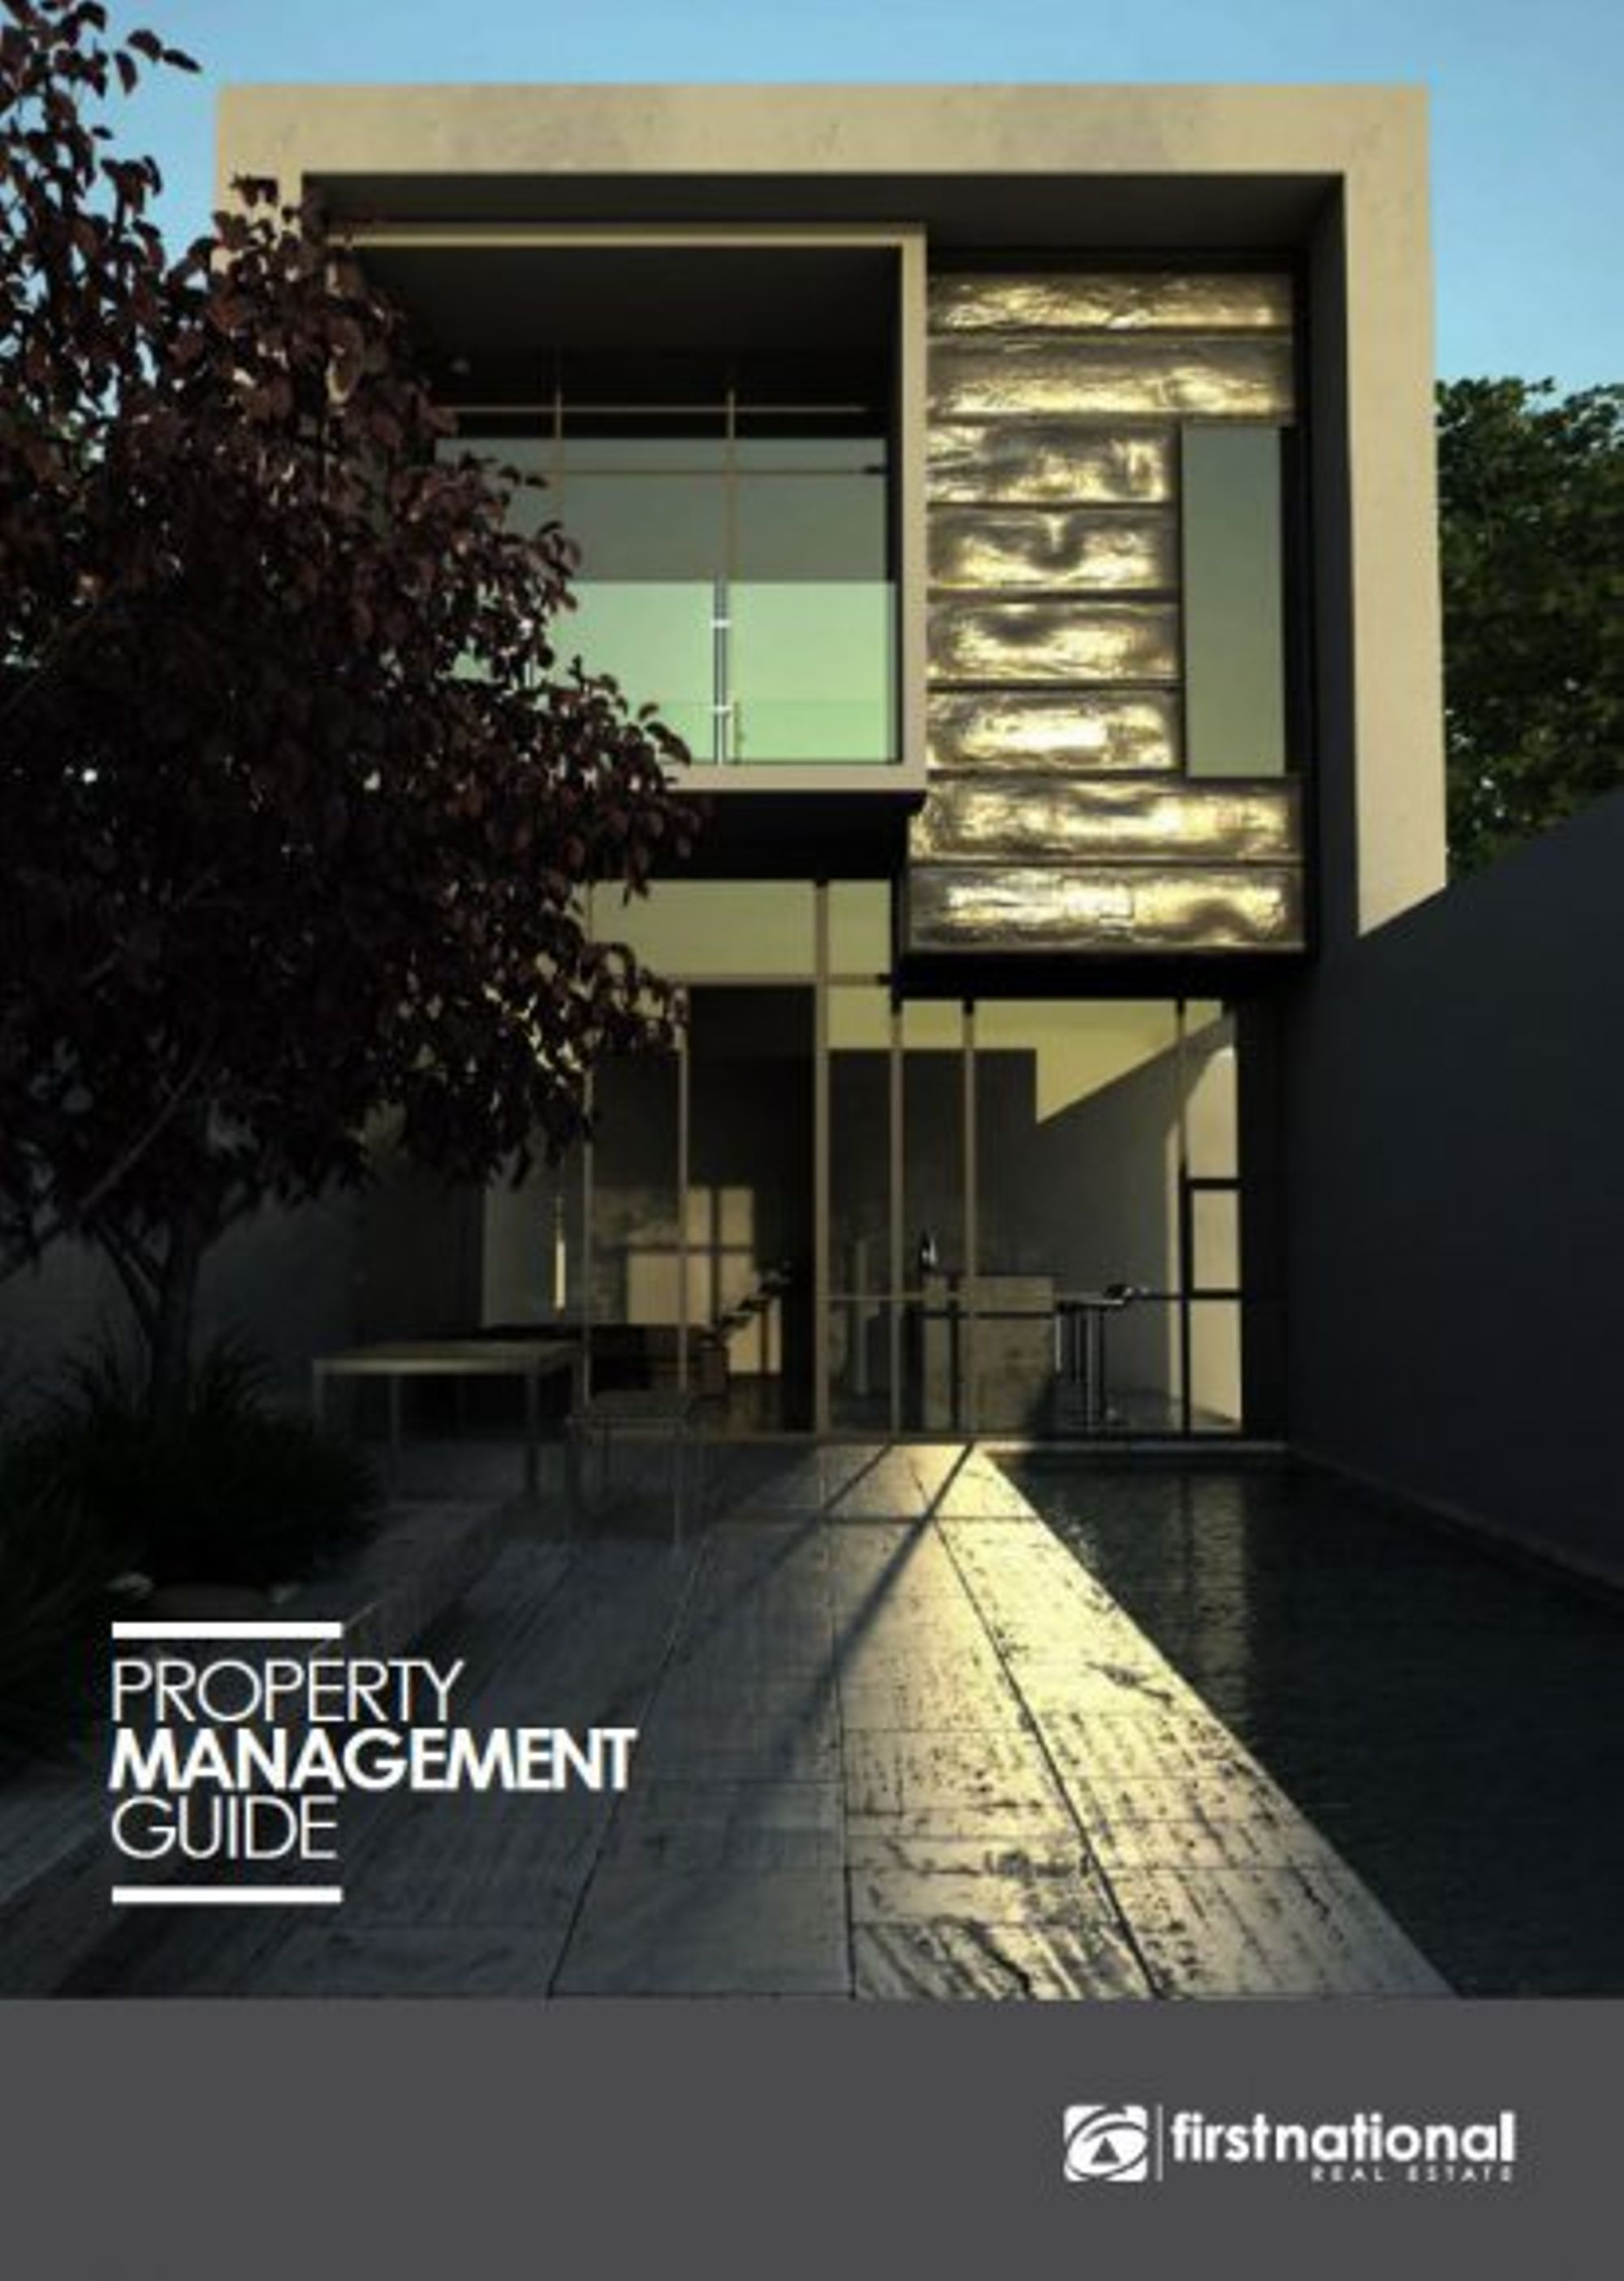 Property Management Guide